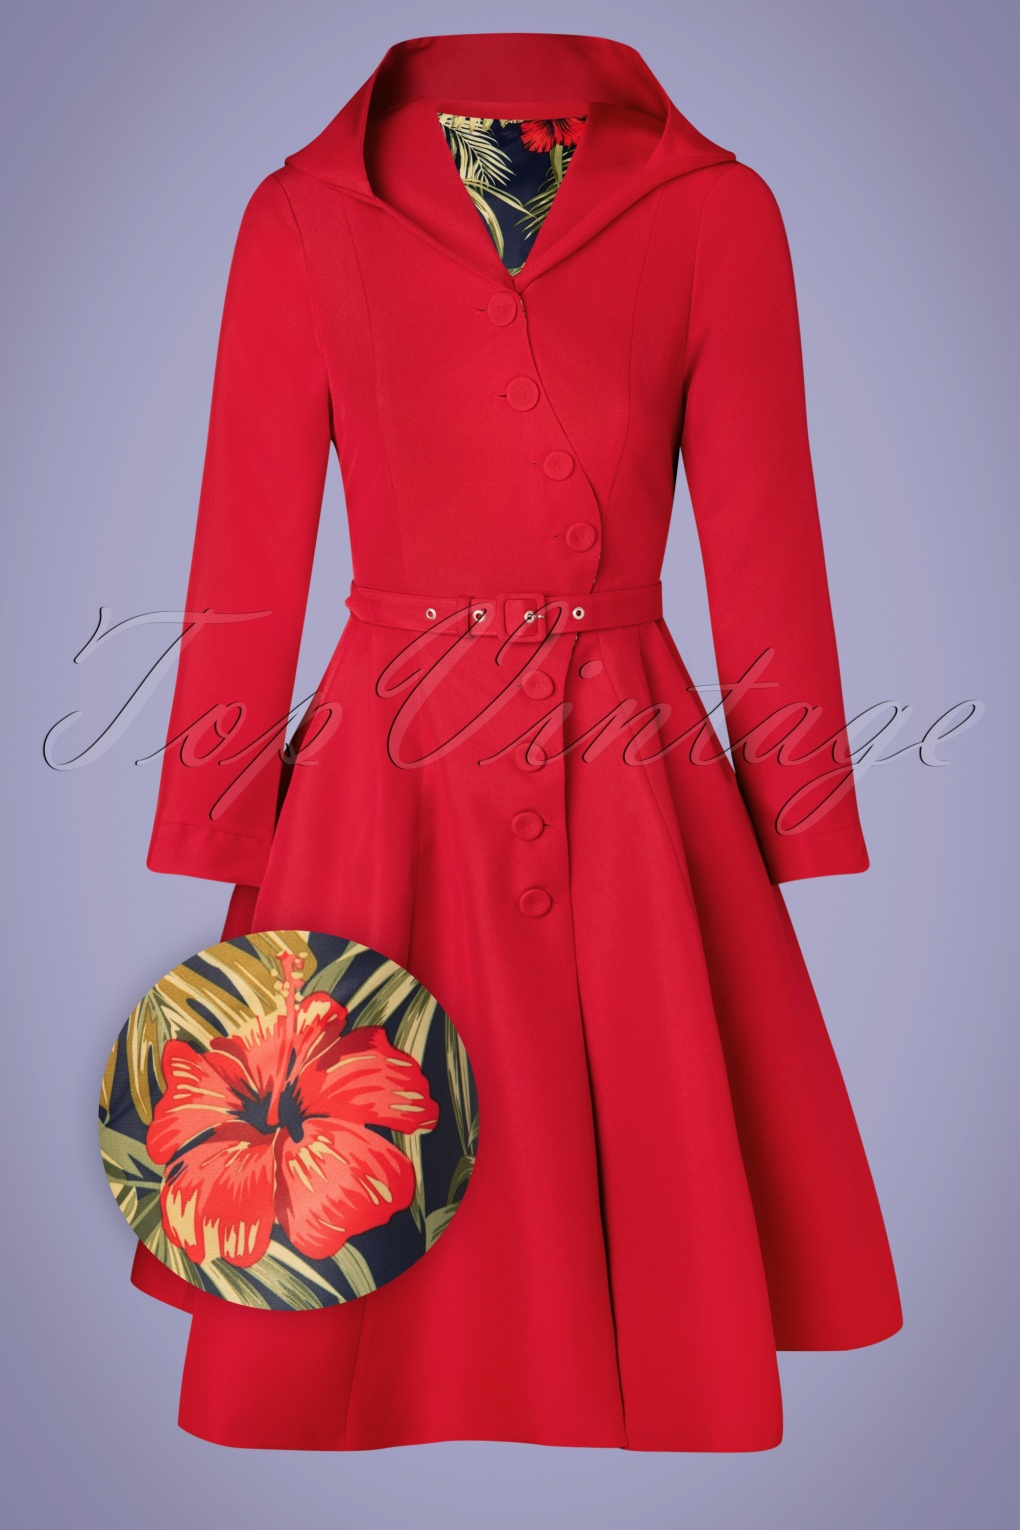 Vintage Coats & Jackets | Retro Coats and Jackets 50s Lorily Rose Swing Trenchcoat in Red and Floral £19.95 AT vintagedancer.com